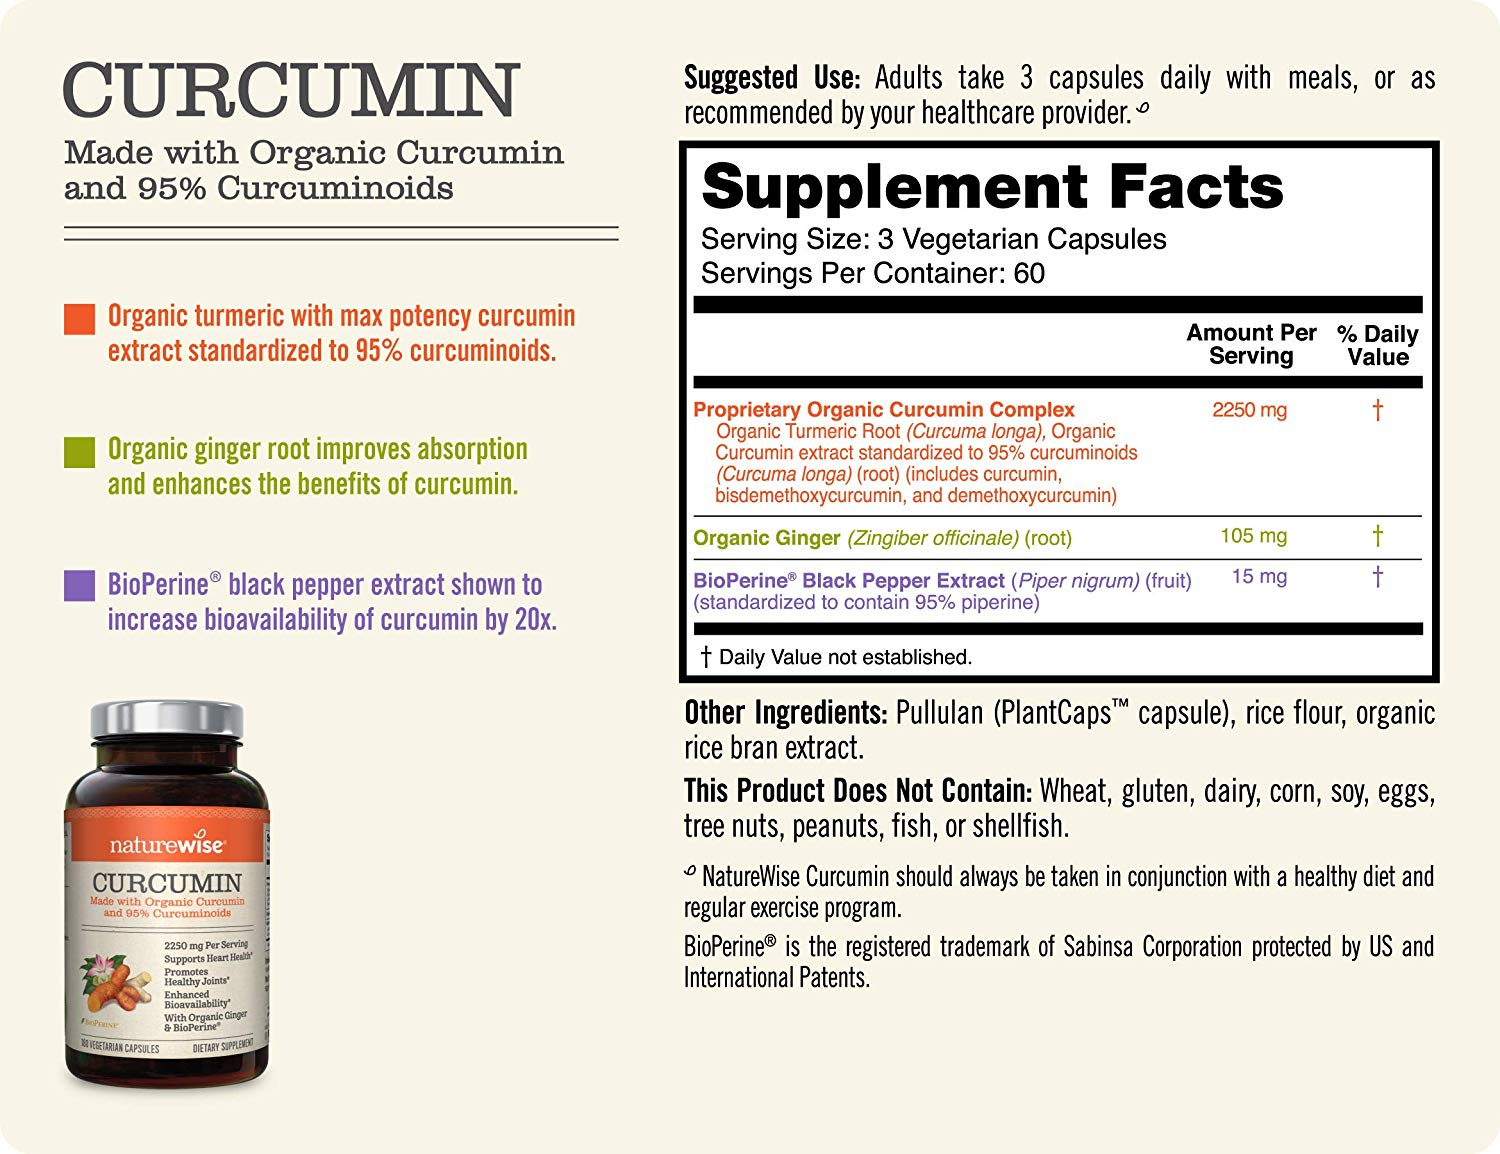 NatureWise Organic Curcumin Turmeric 180 Capsules by NatureWise Supplement Facts